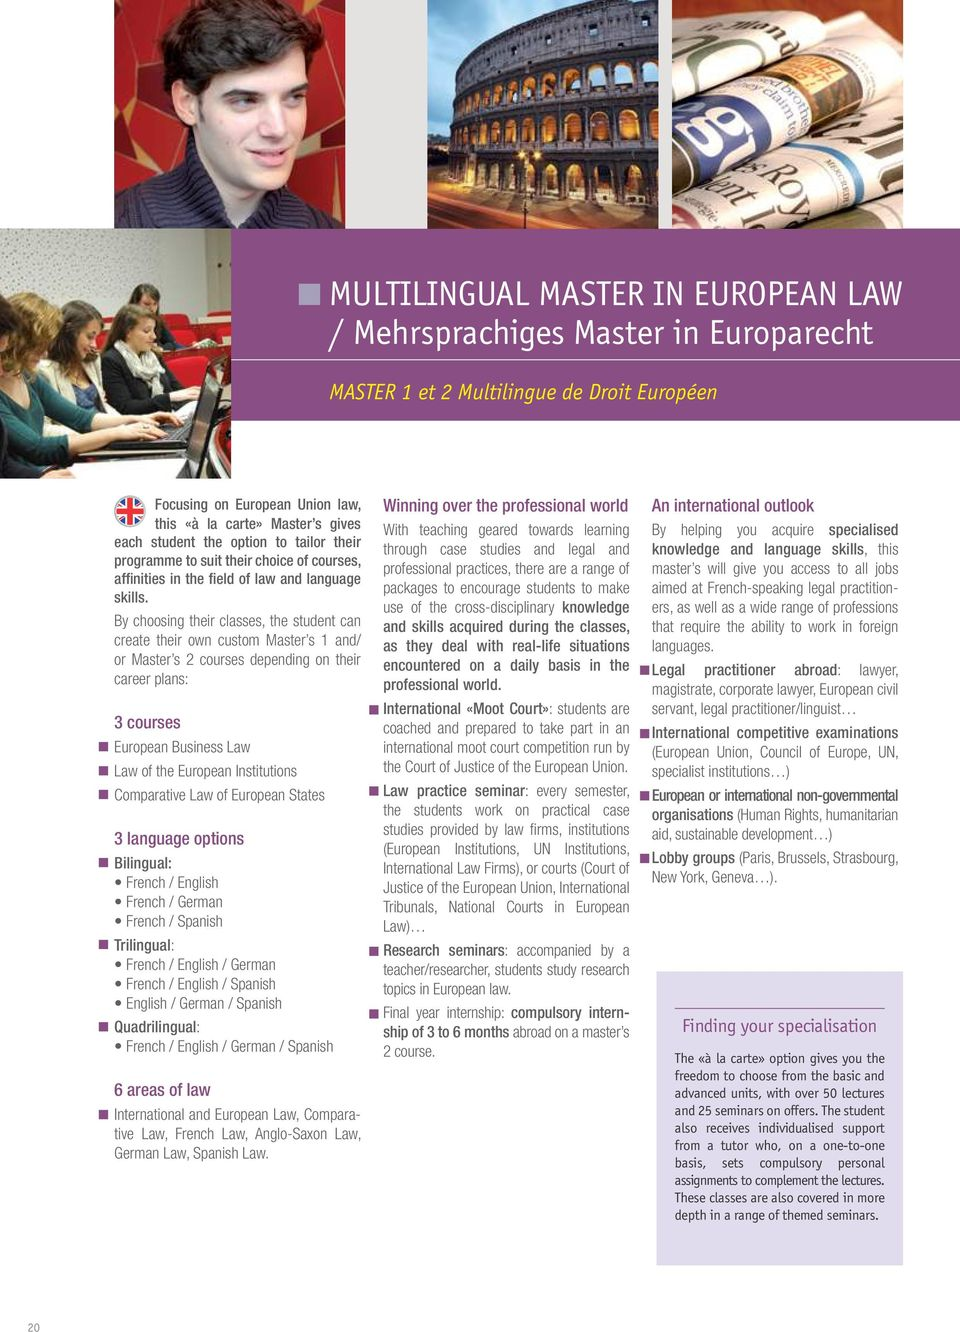 By choosing their classes, the student can create their own custom Master s 1 and/ or Master s 2 courses depending on their career plans: 3 courses European Business Law Law of the European